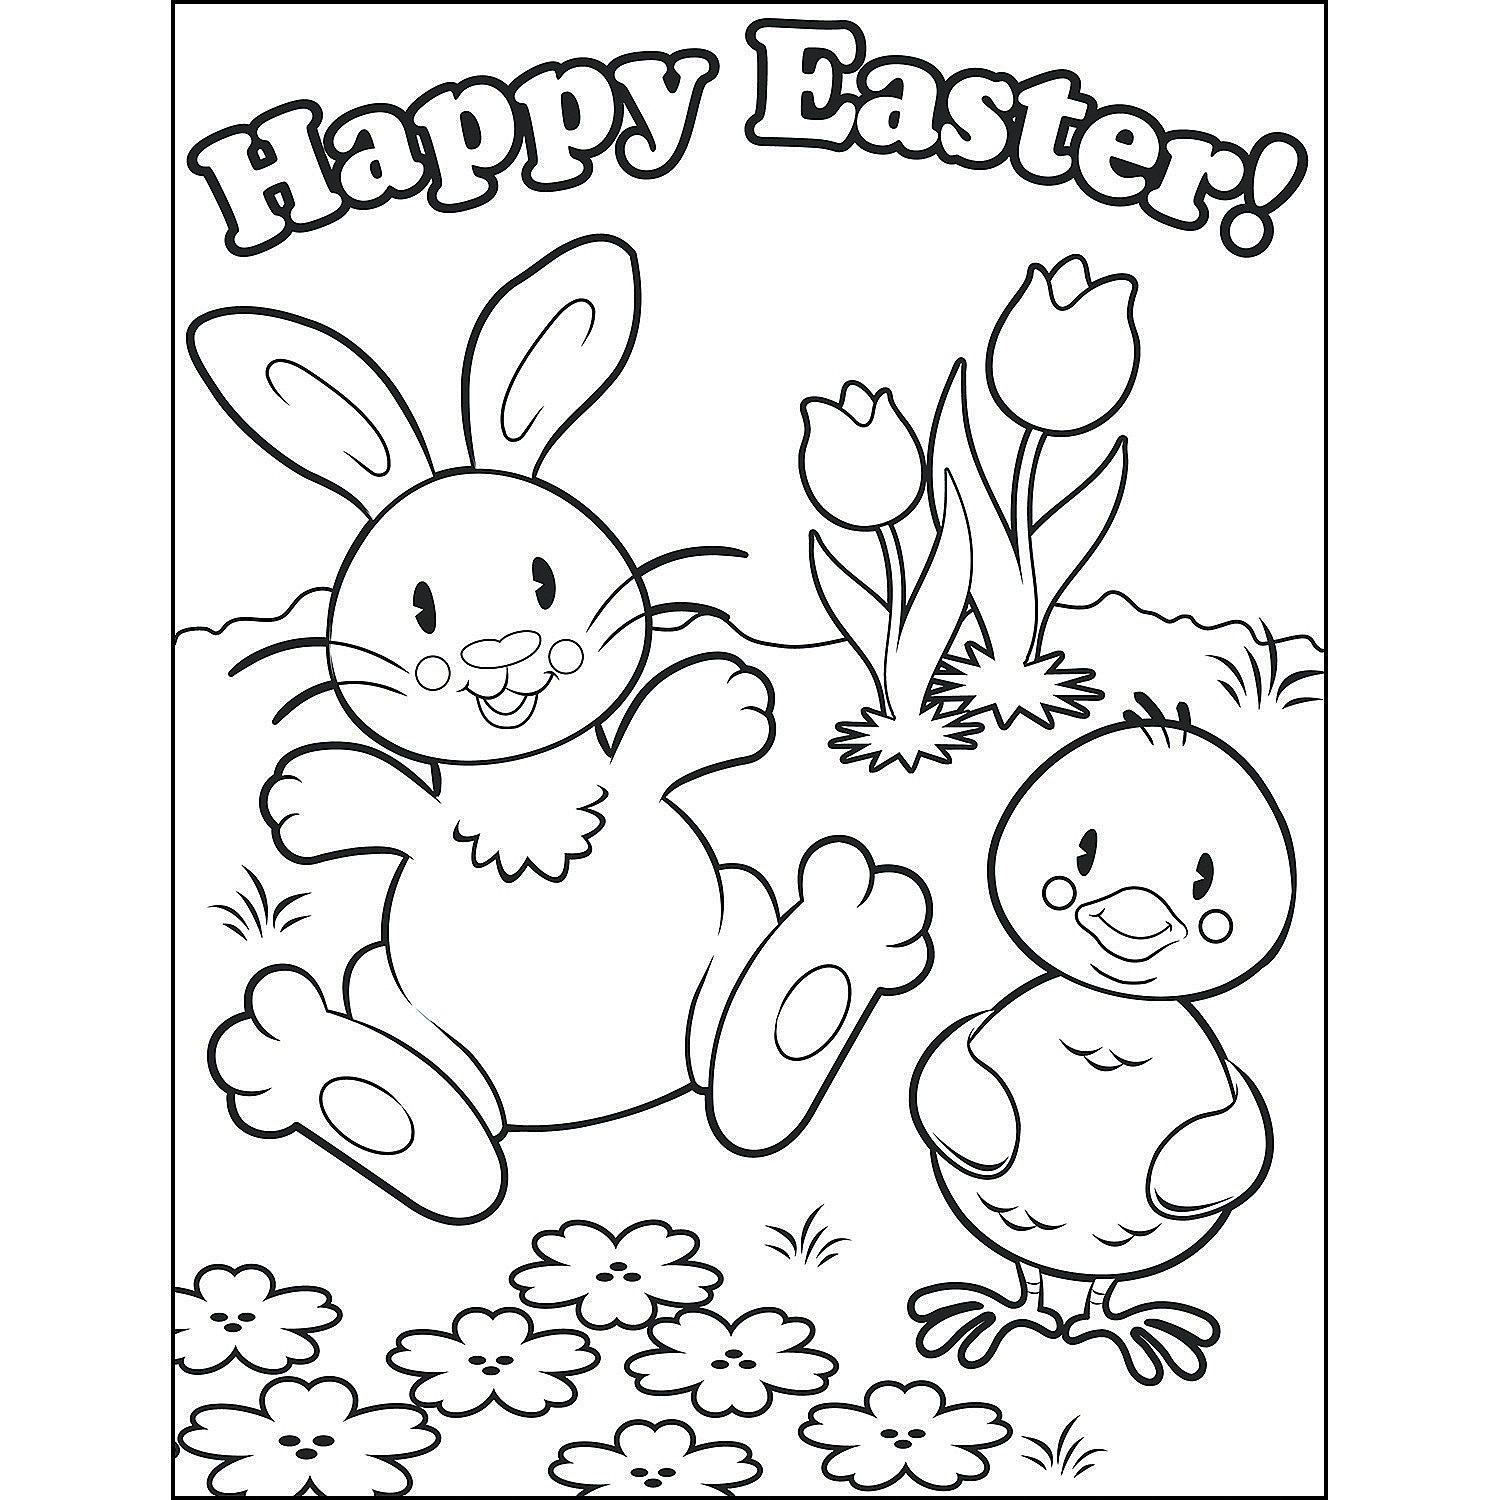 Happy Easter Coloring Pages at GetDrawings | Free download